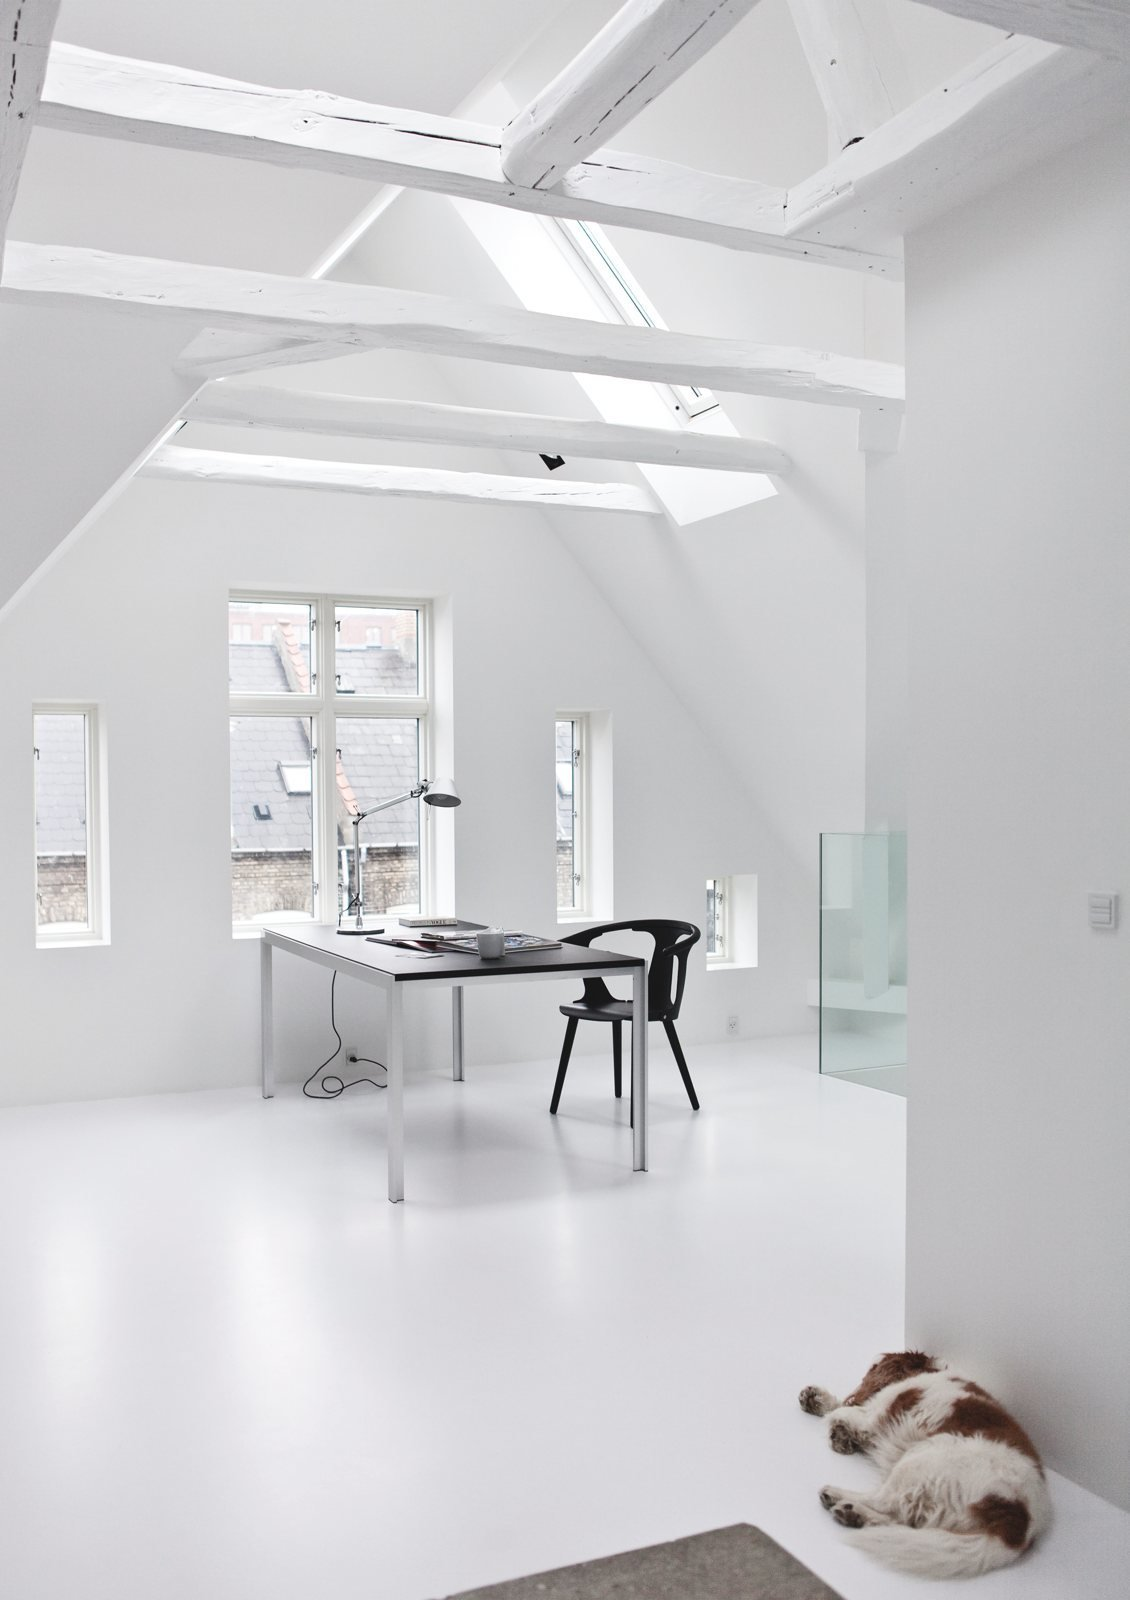 Attic workspace. Copenhagen Townhouse II by Norm.Architects. © Jonas Bjerre-Poulsen.  Modern Danish Homes We Love by Aileen Kwun from Studies and workspaces